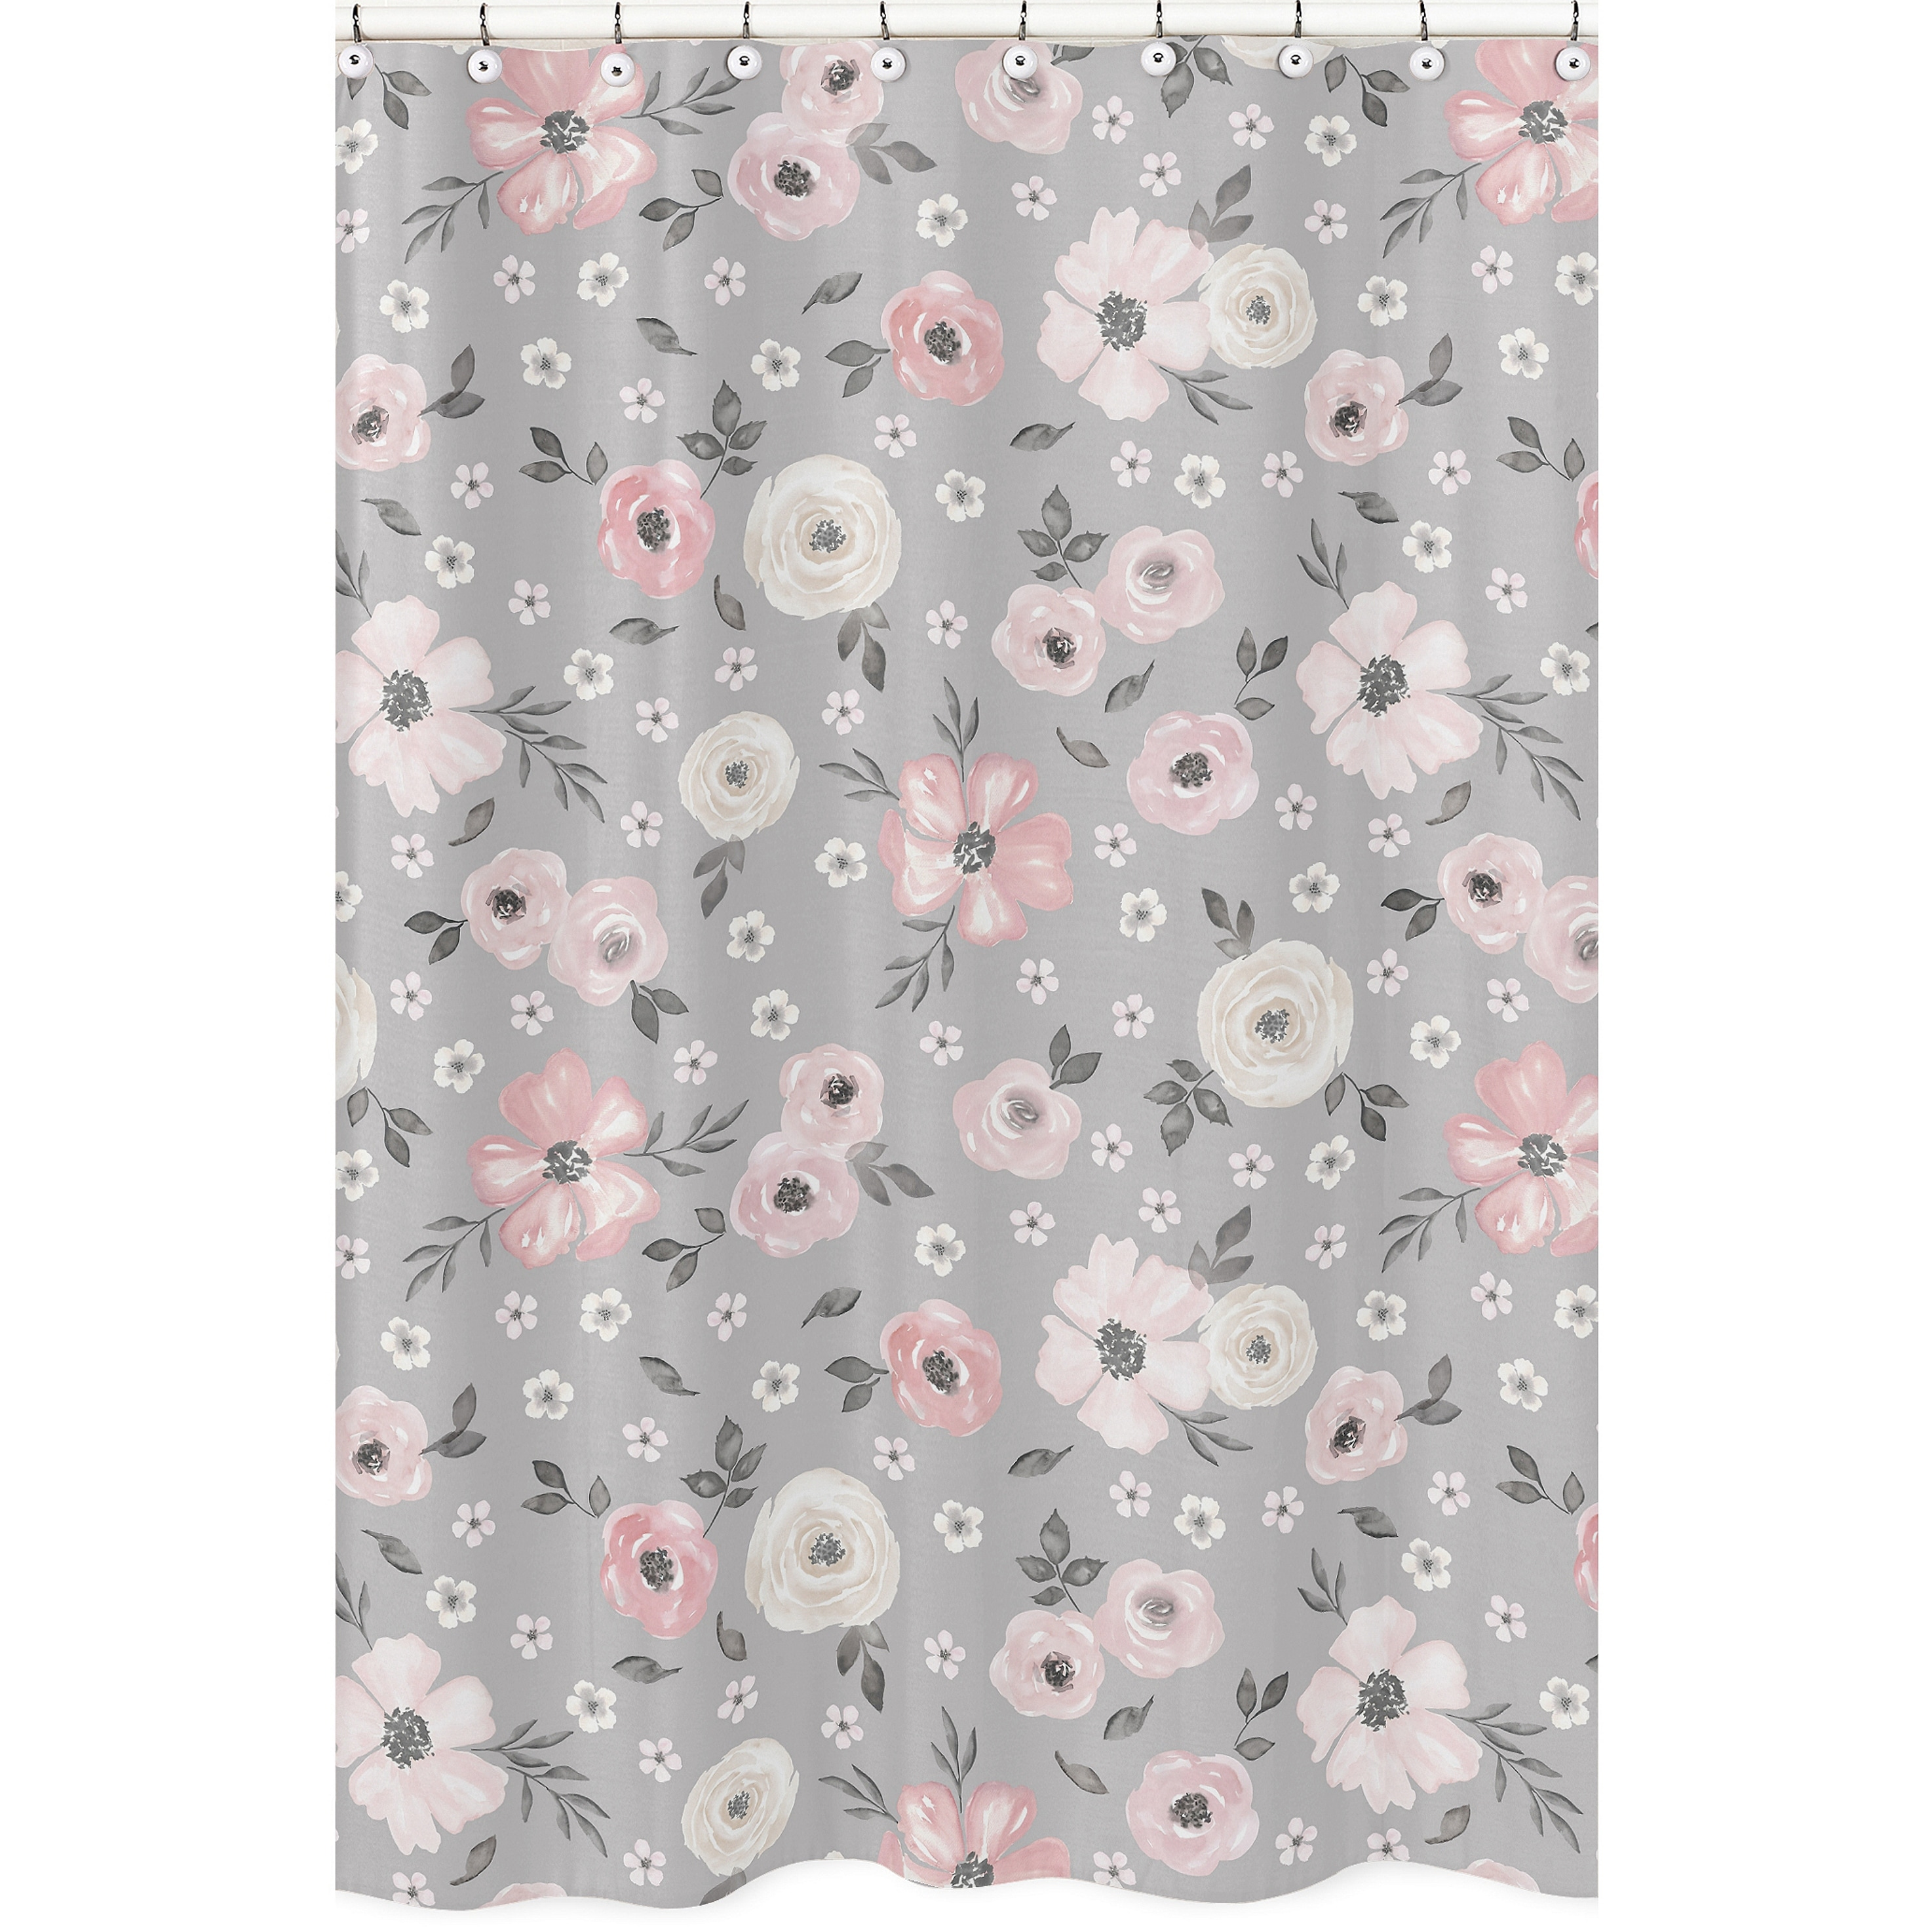 grey watercolor floral collection bathroom fabric bath shower curtain blush pink gray white shabby chic rose flower farmhouse